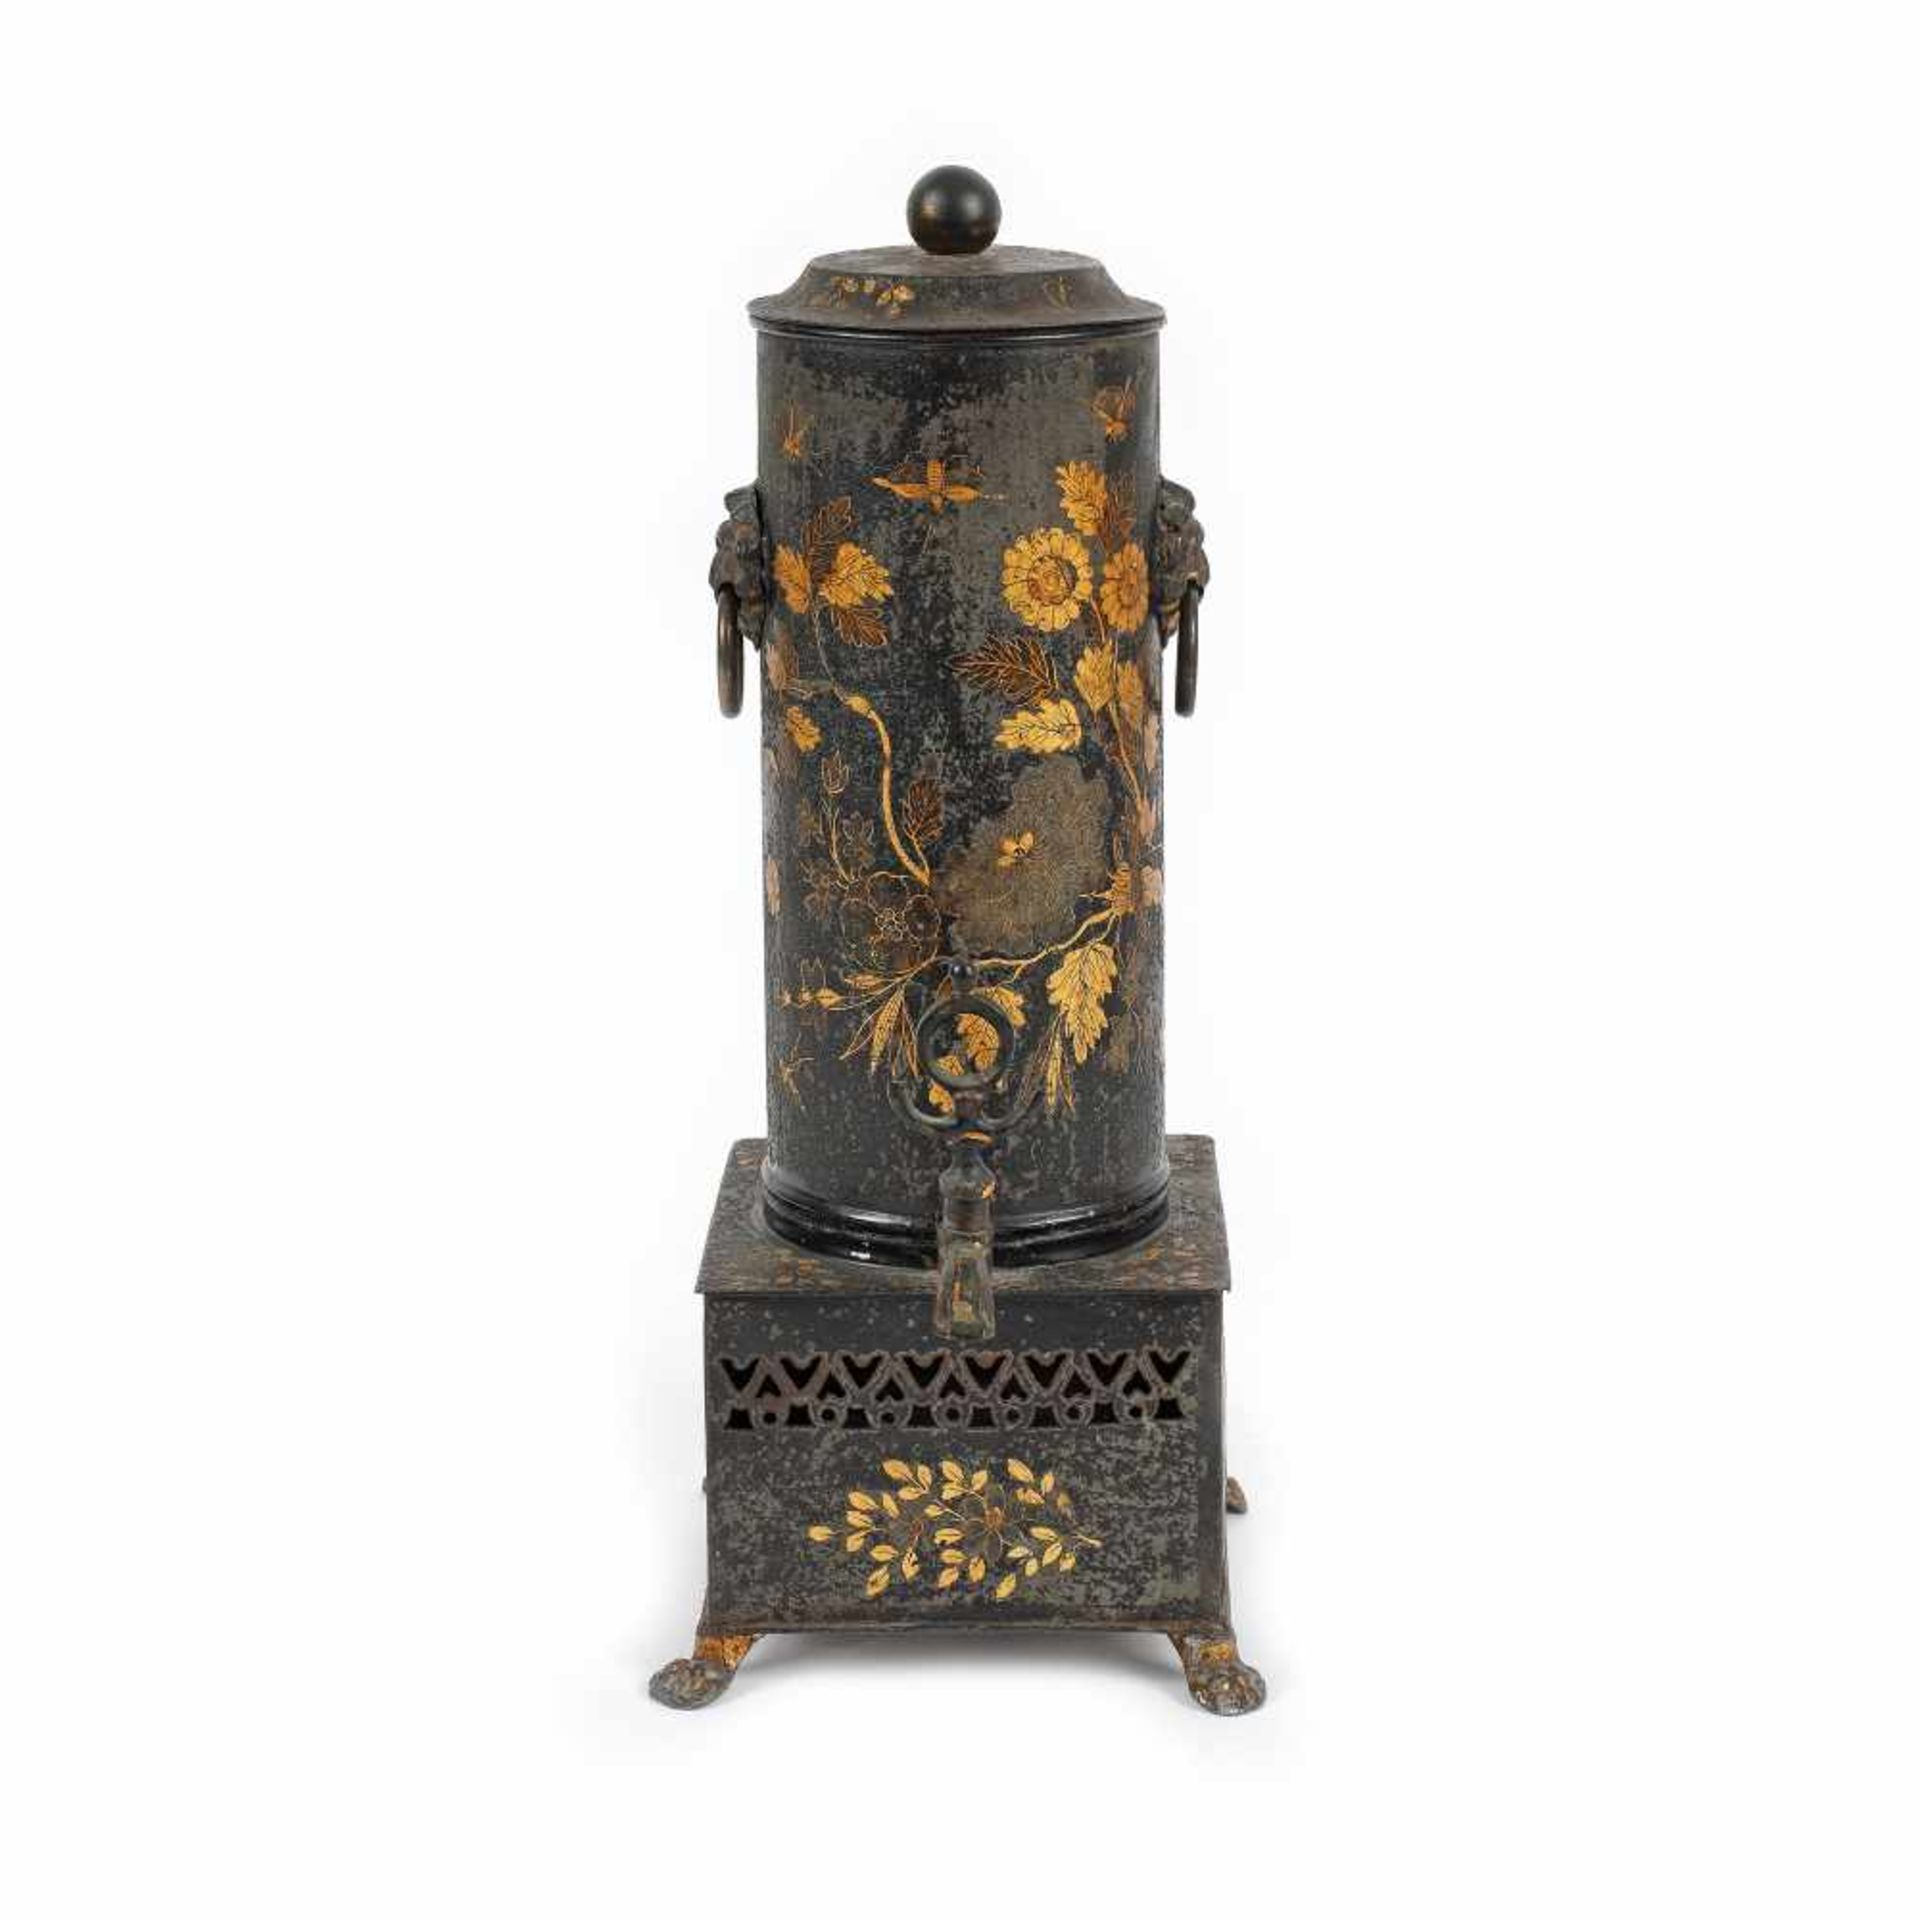 Coffee maker decorated with floral motifs, possibly France, early 20th century